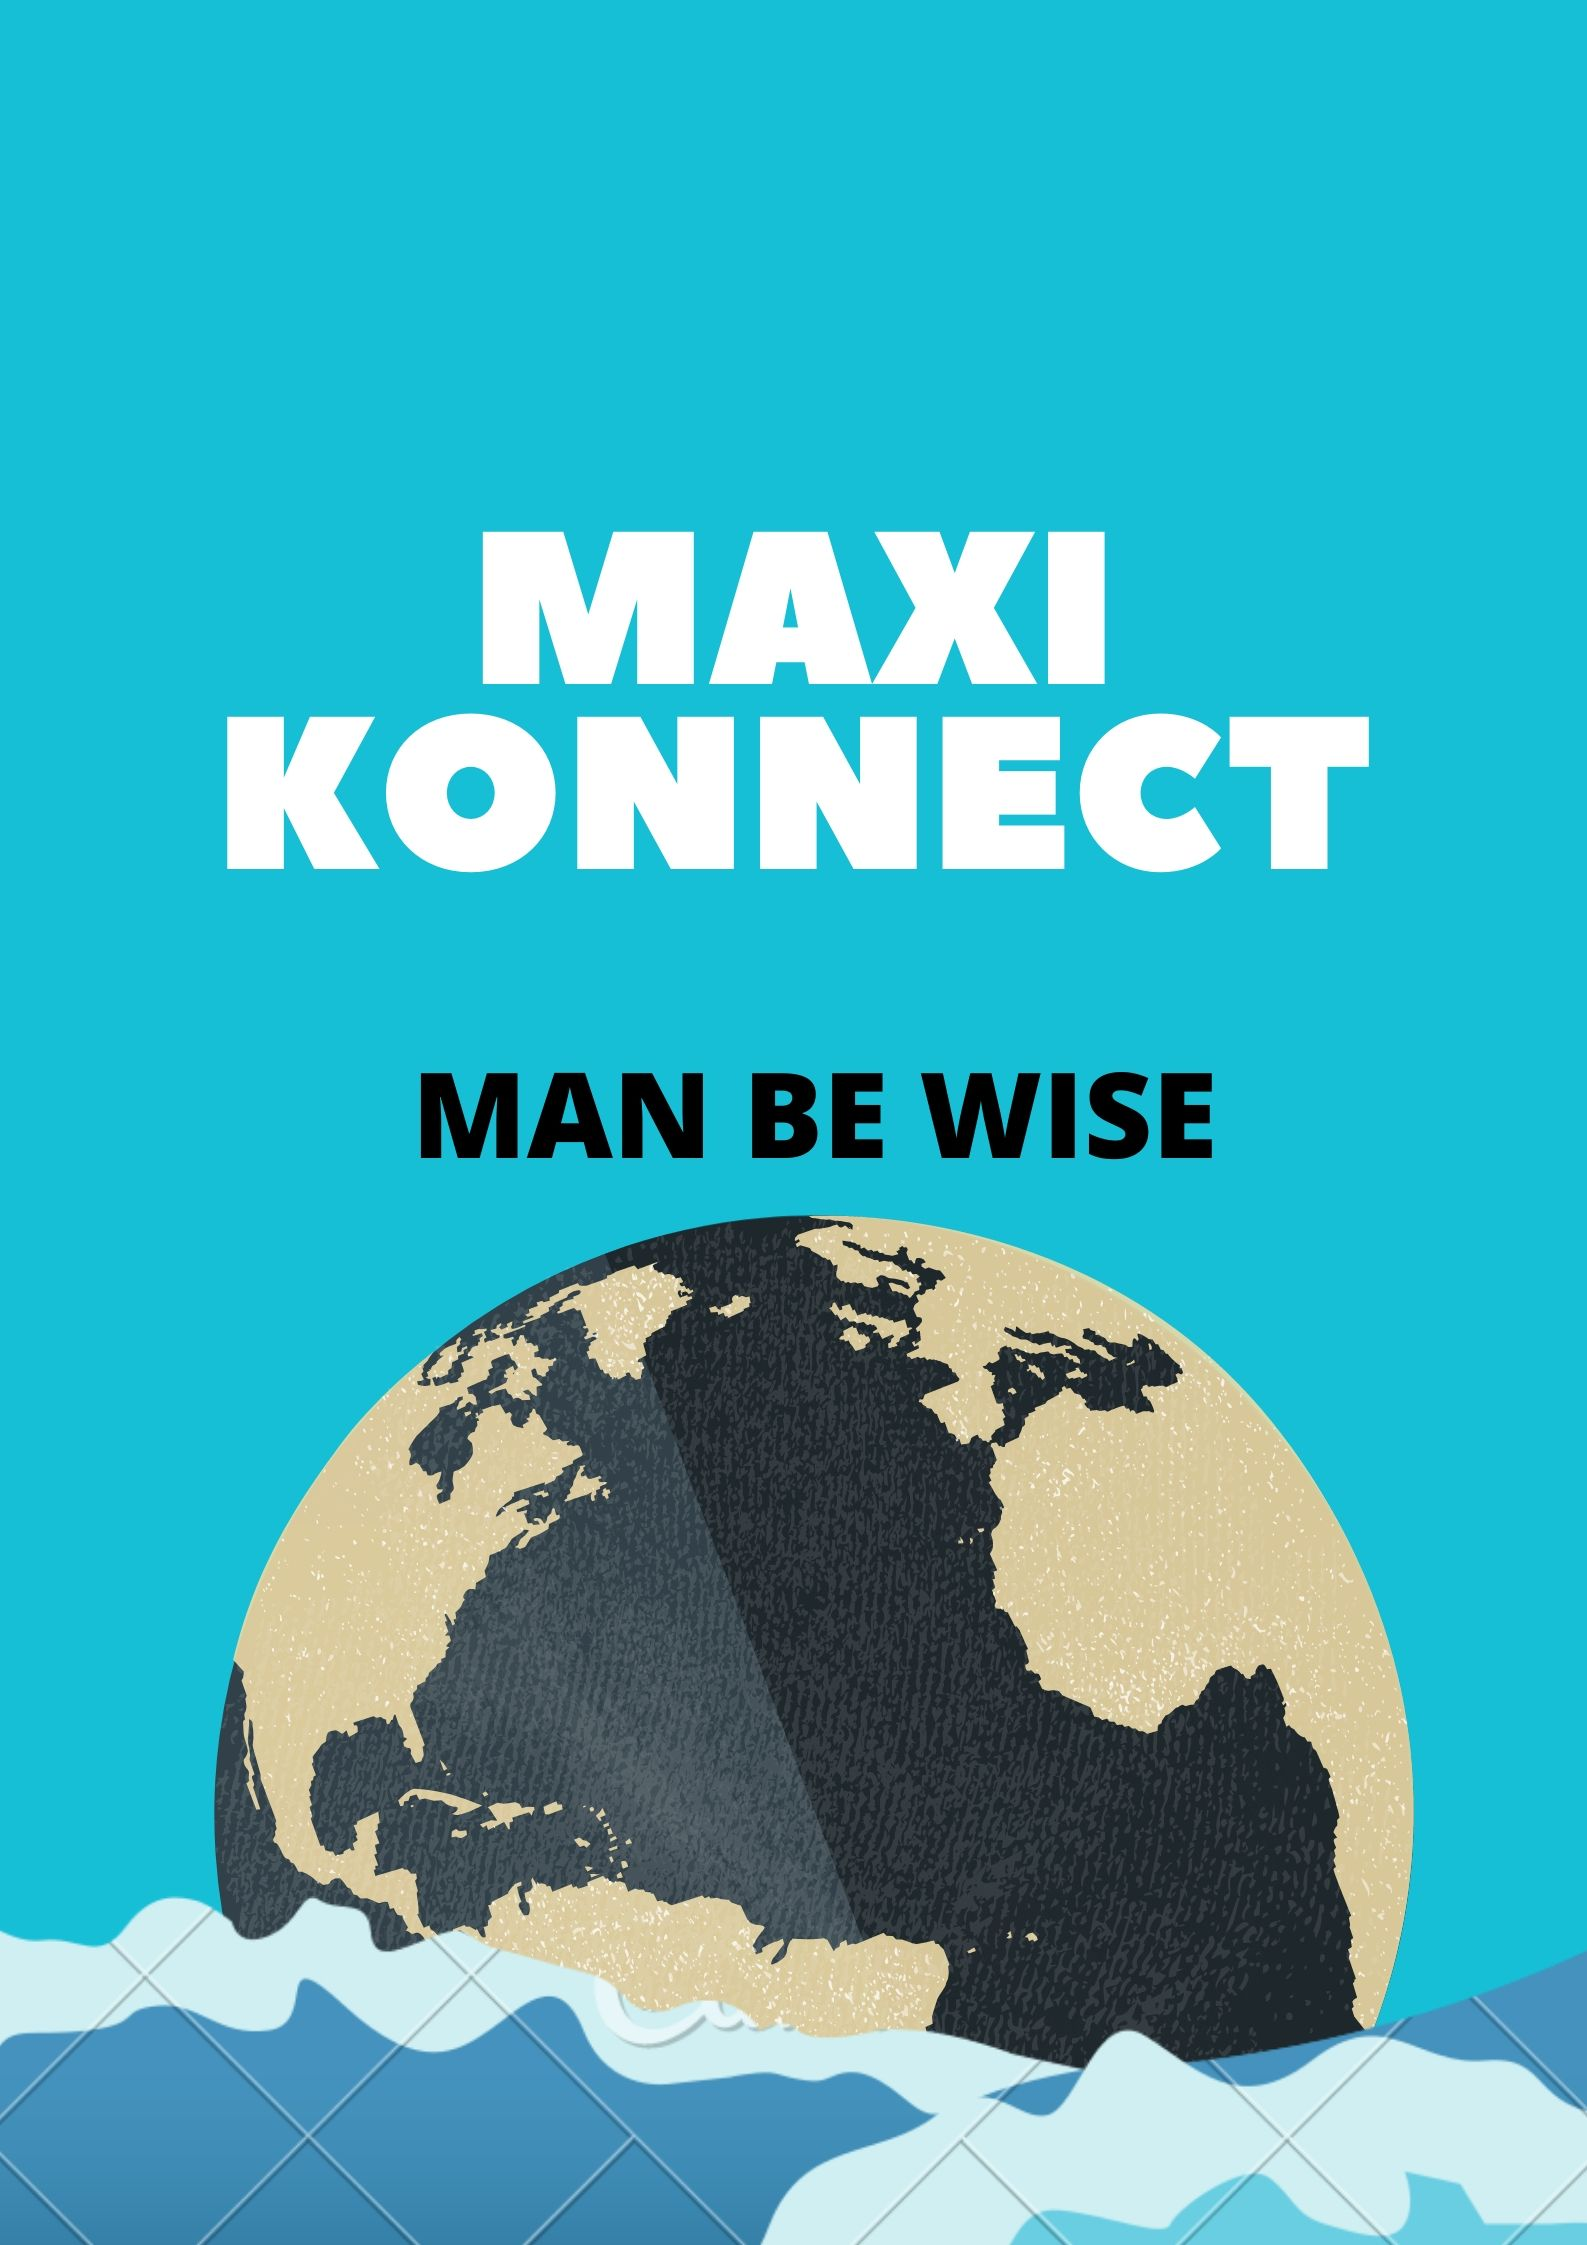 Maxi Konnect - Man Be Wise